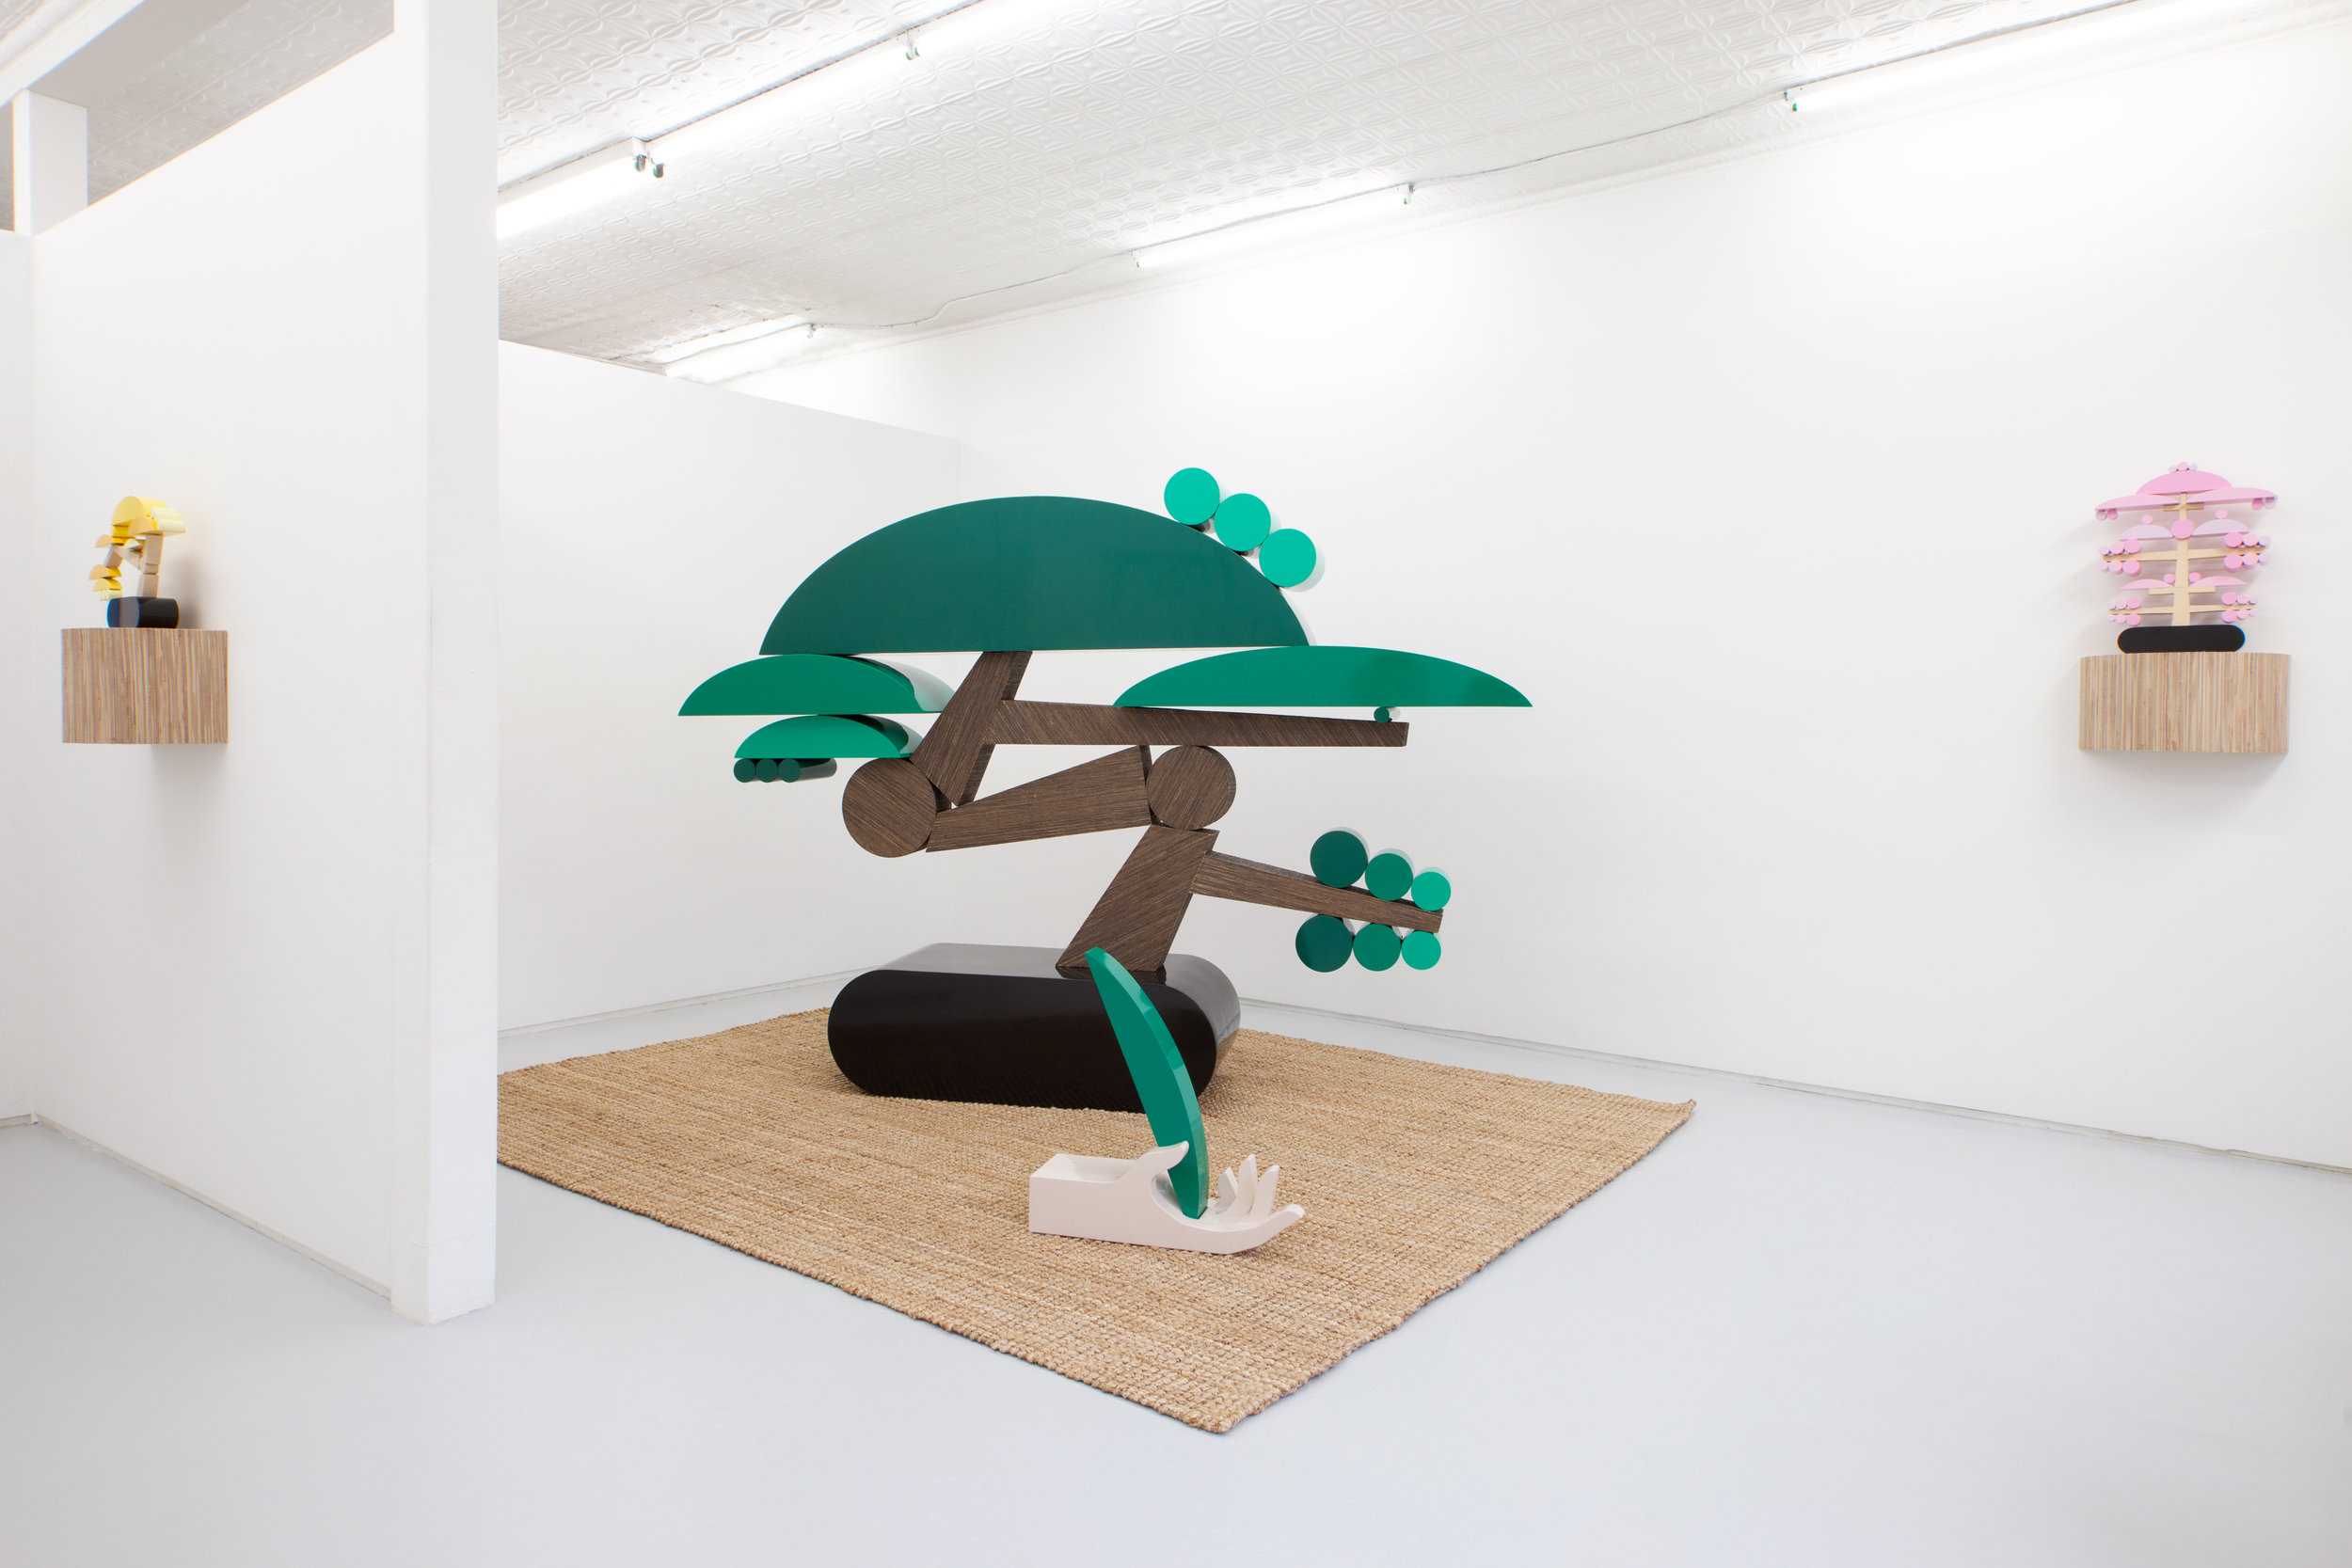 Chris_Bogia-Under_the_Bonsai_Tree-Mrs.-Installation_View_004.jpg